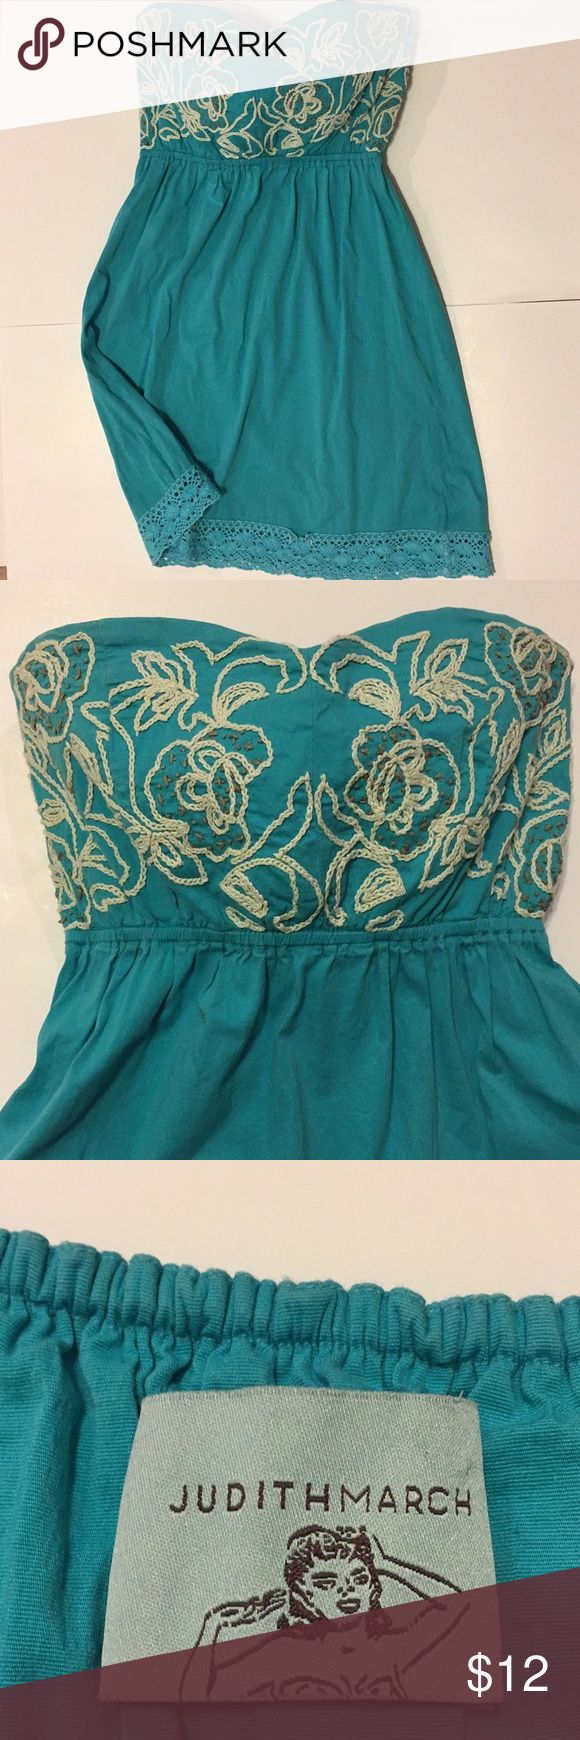 "Judith March Teal Strapless Sundress Judith March Teal embroidered strapless sundress.  This dress has been previously loved but is in decent condition. There are two flaws, pictured: (1) the crocheted trim on the hem has a small hole that has unattached from the hem.  (2) tiny stain on the white embroidery on top of dress. Can't really see it unless your looking for it.  The dress size is missing. I believe it to be a size Small Approx measurements are: Chest: 14.5"" Length: 25"" Please ask…"